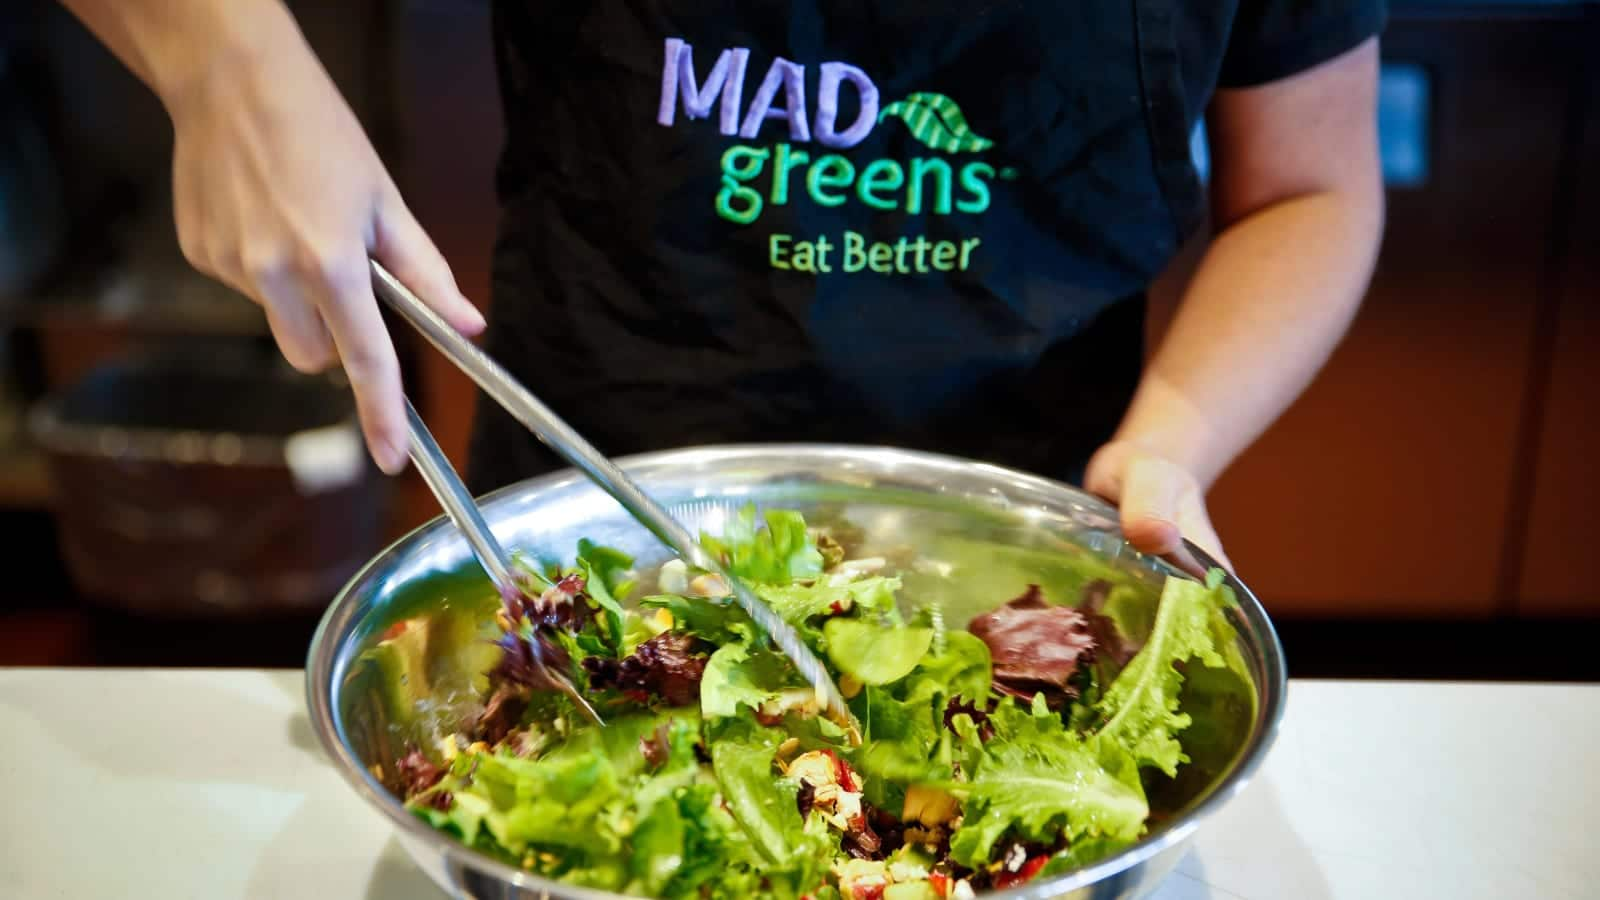 Mad Greens Salad Mixing Bowl